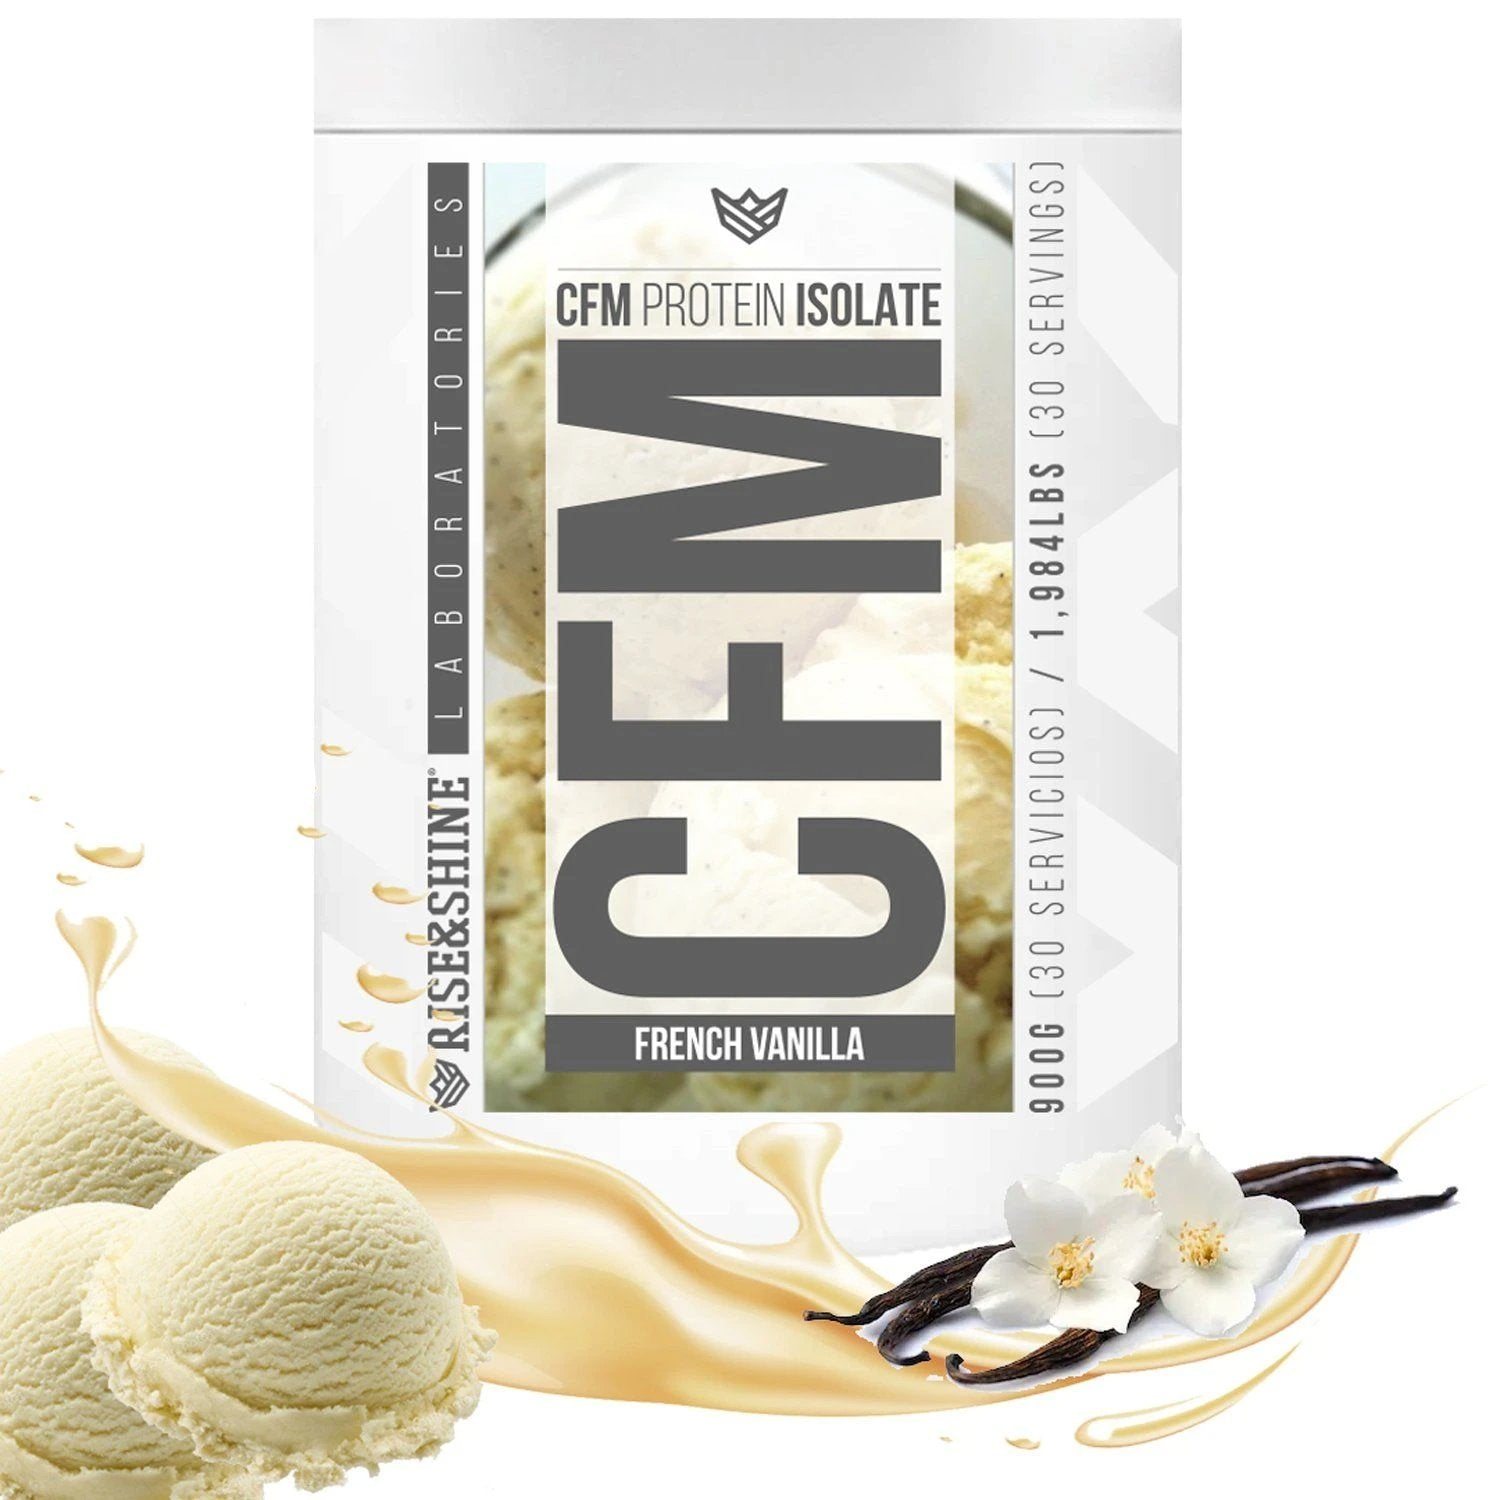 900g CFM Whey Protein Isolate (French Vanilla)